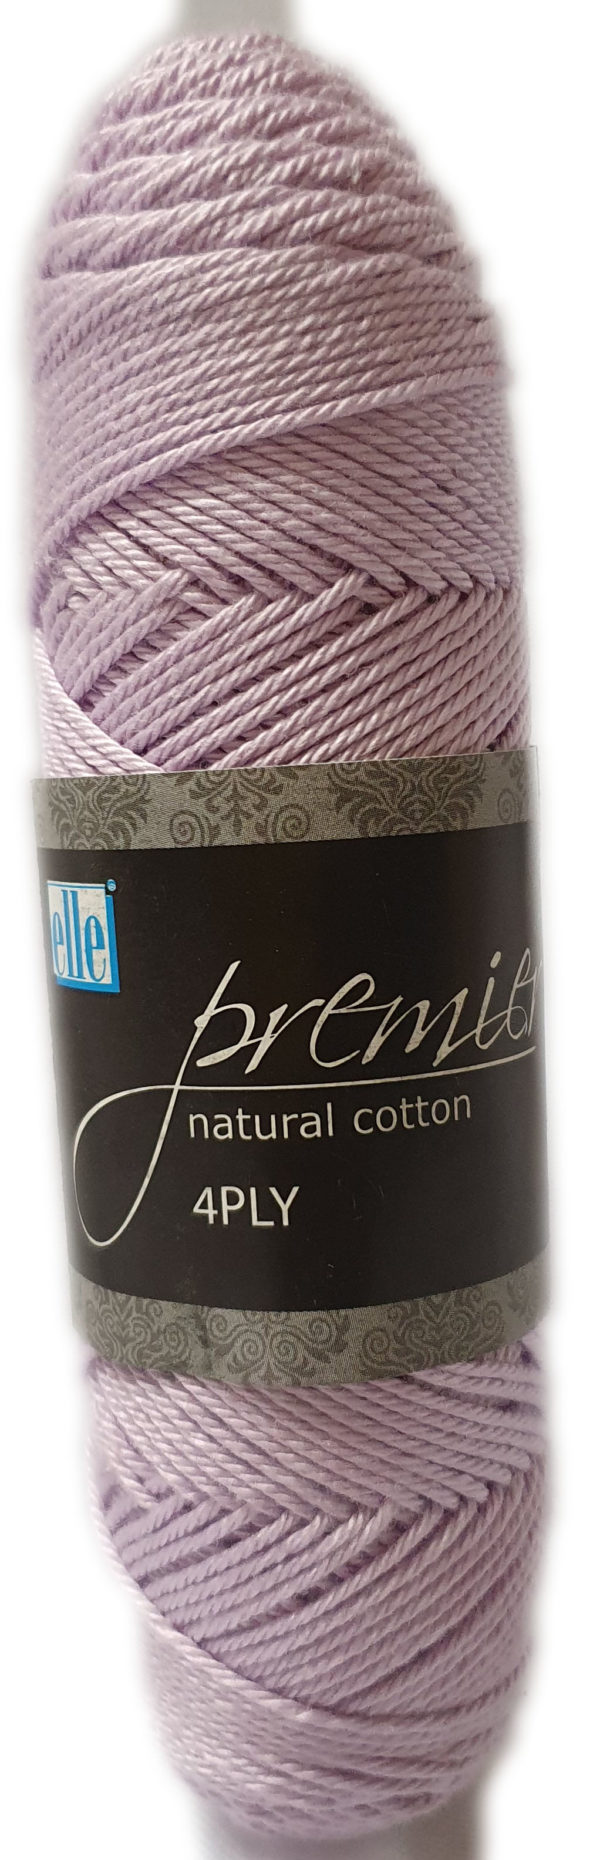 PREMIER NATURAL COTTON 4 PLY 50g-COL.071 LILAC 1